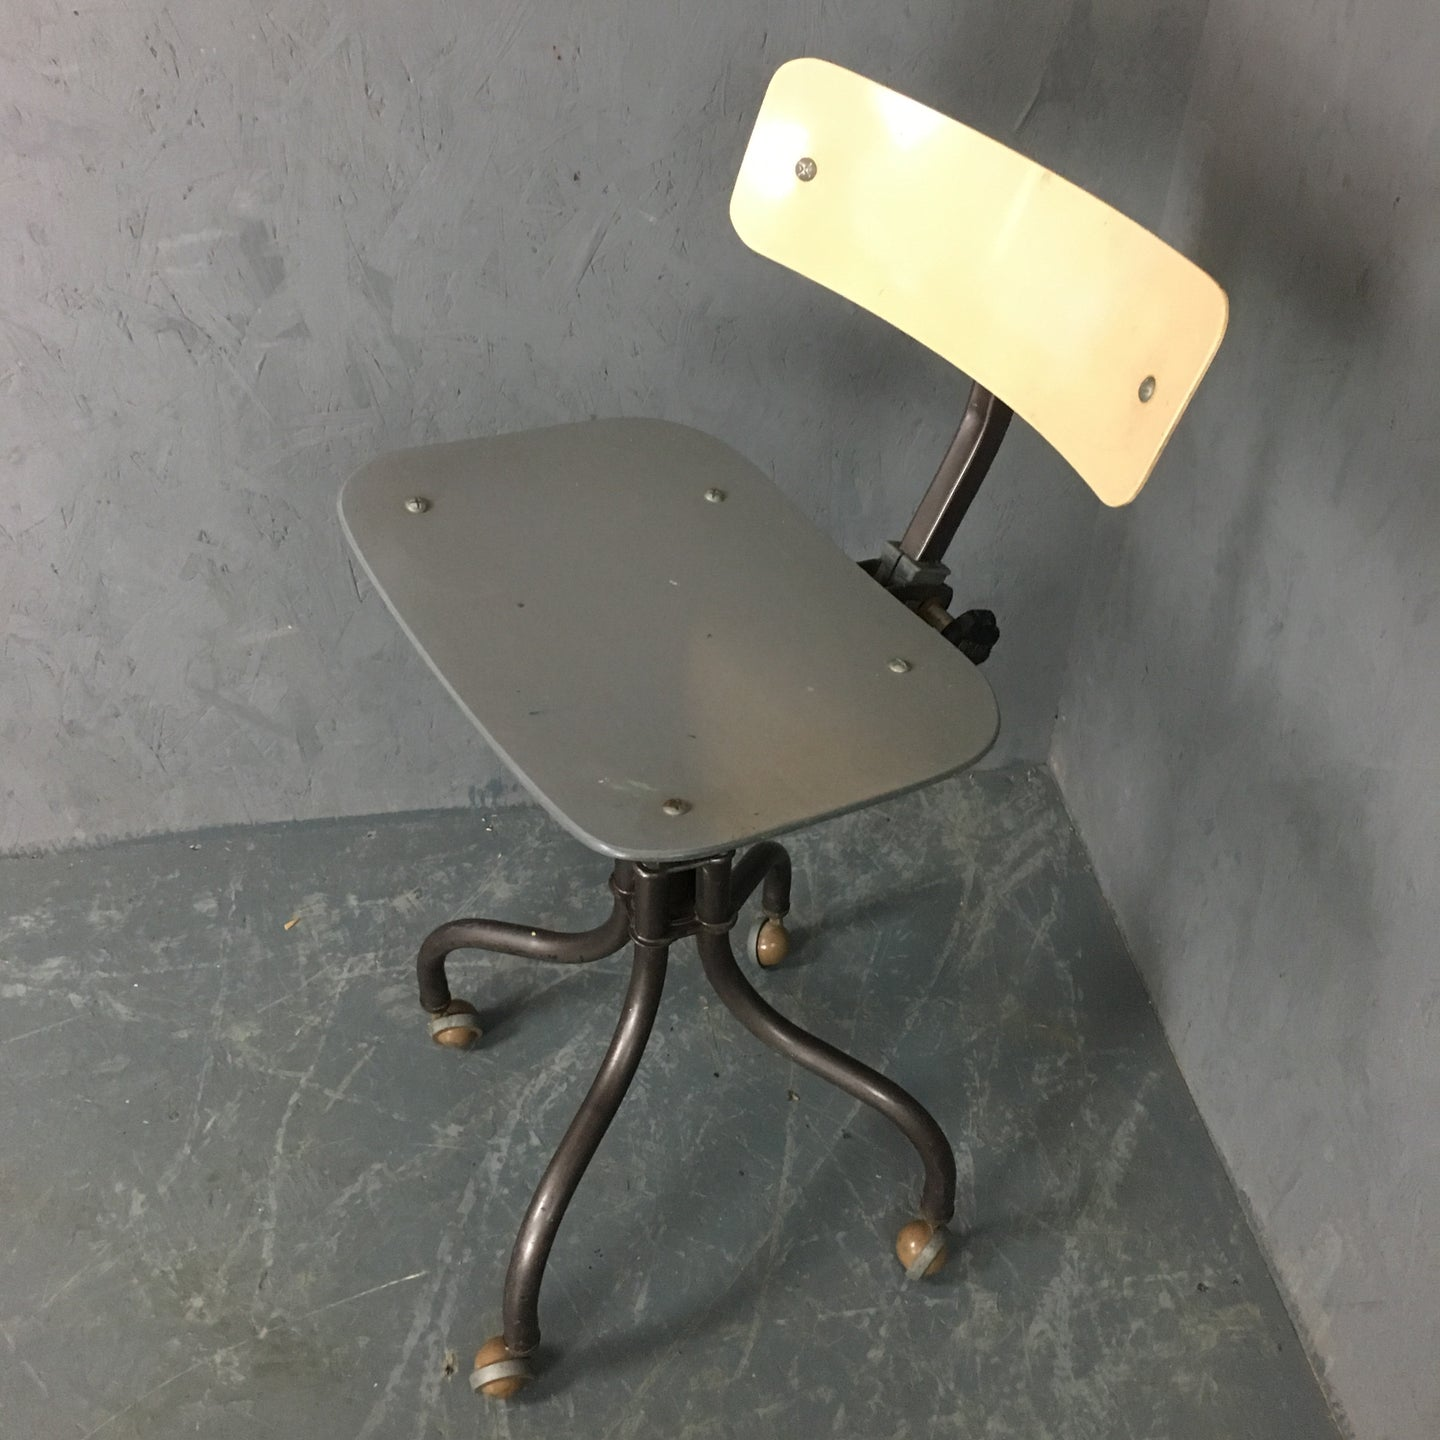 Tan-sad industrial office/machinists chair